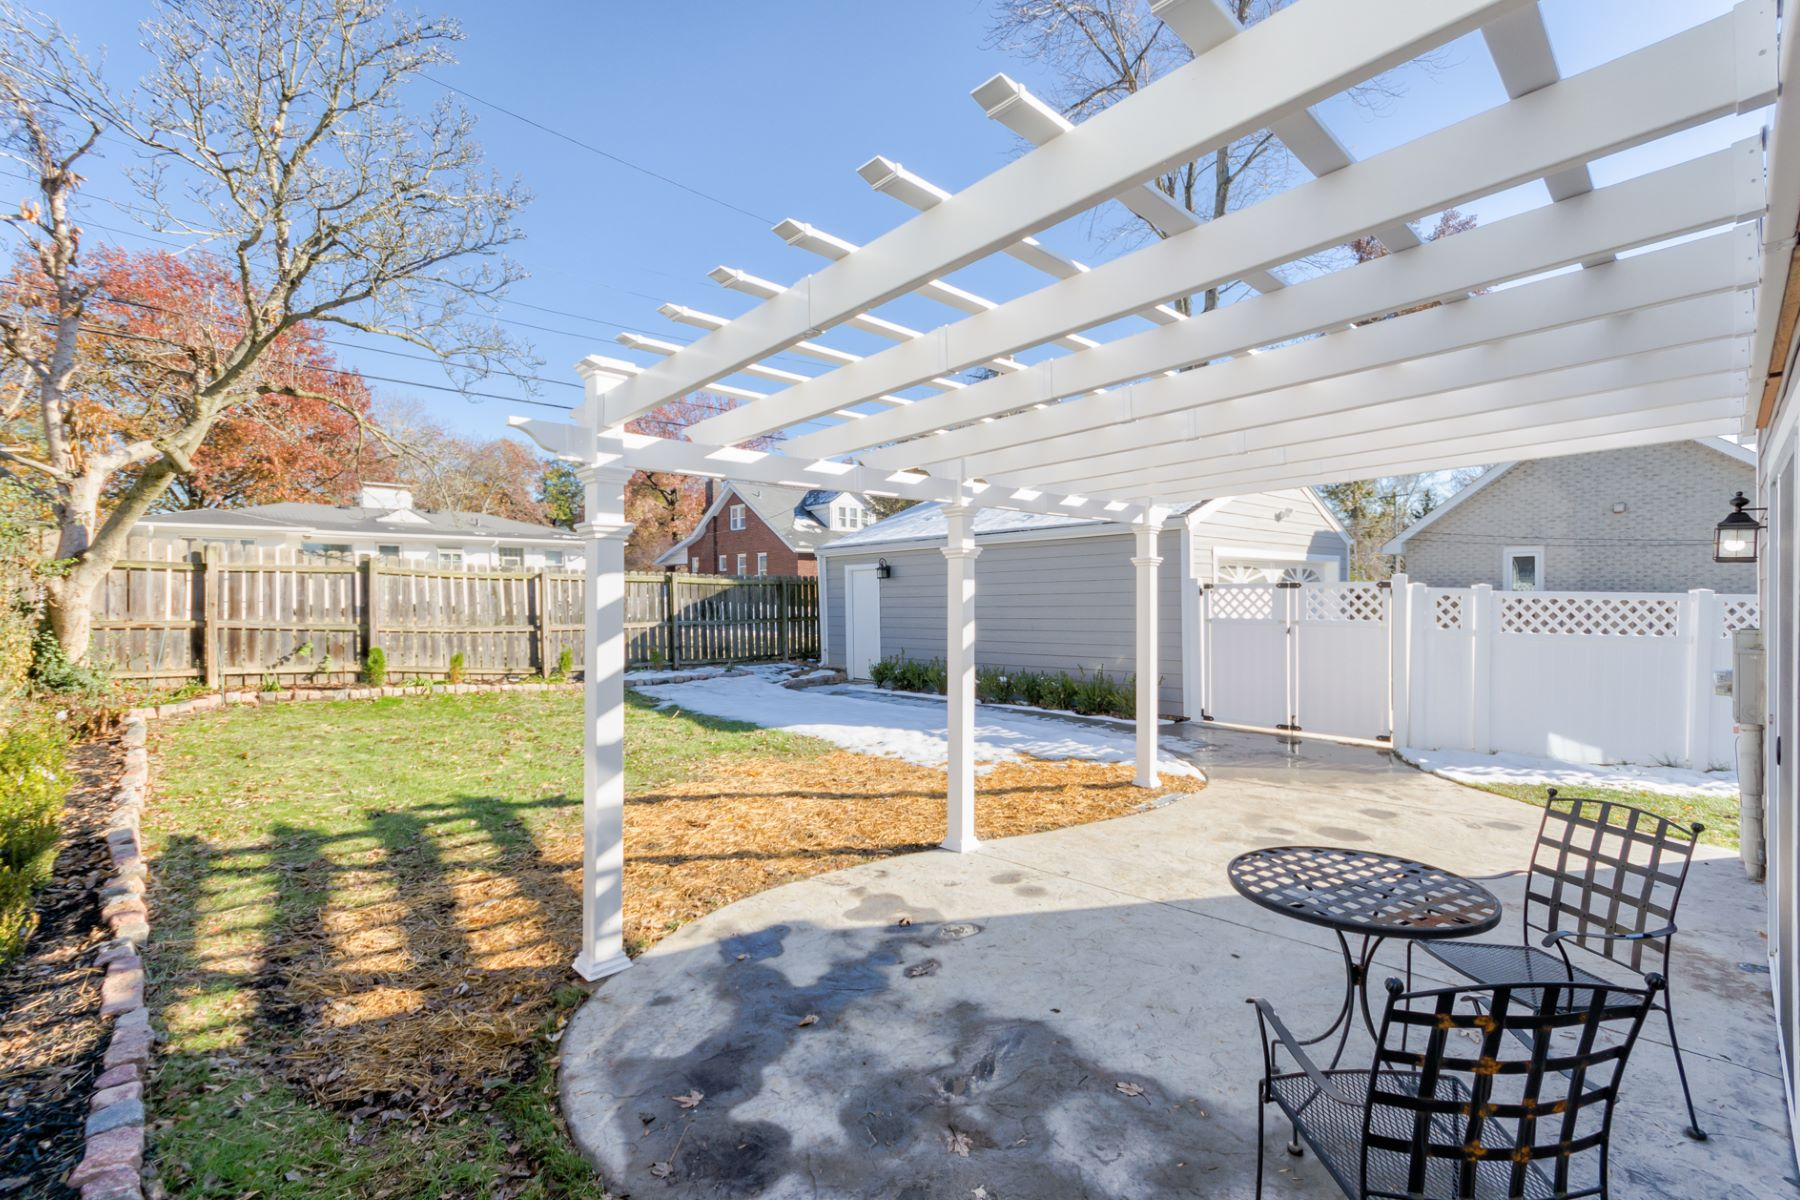 Additional photo for property listing at Midpark Lane 6 Midpark Lane Ladue, Missouri 63124 United States